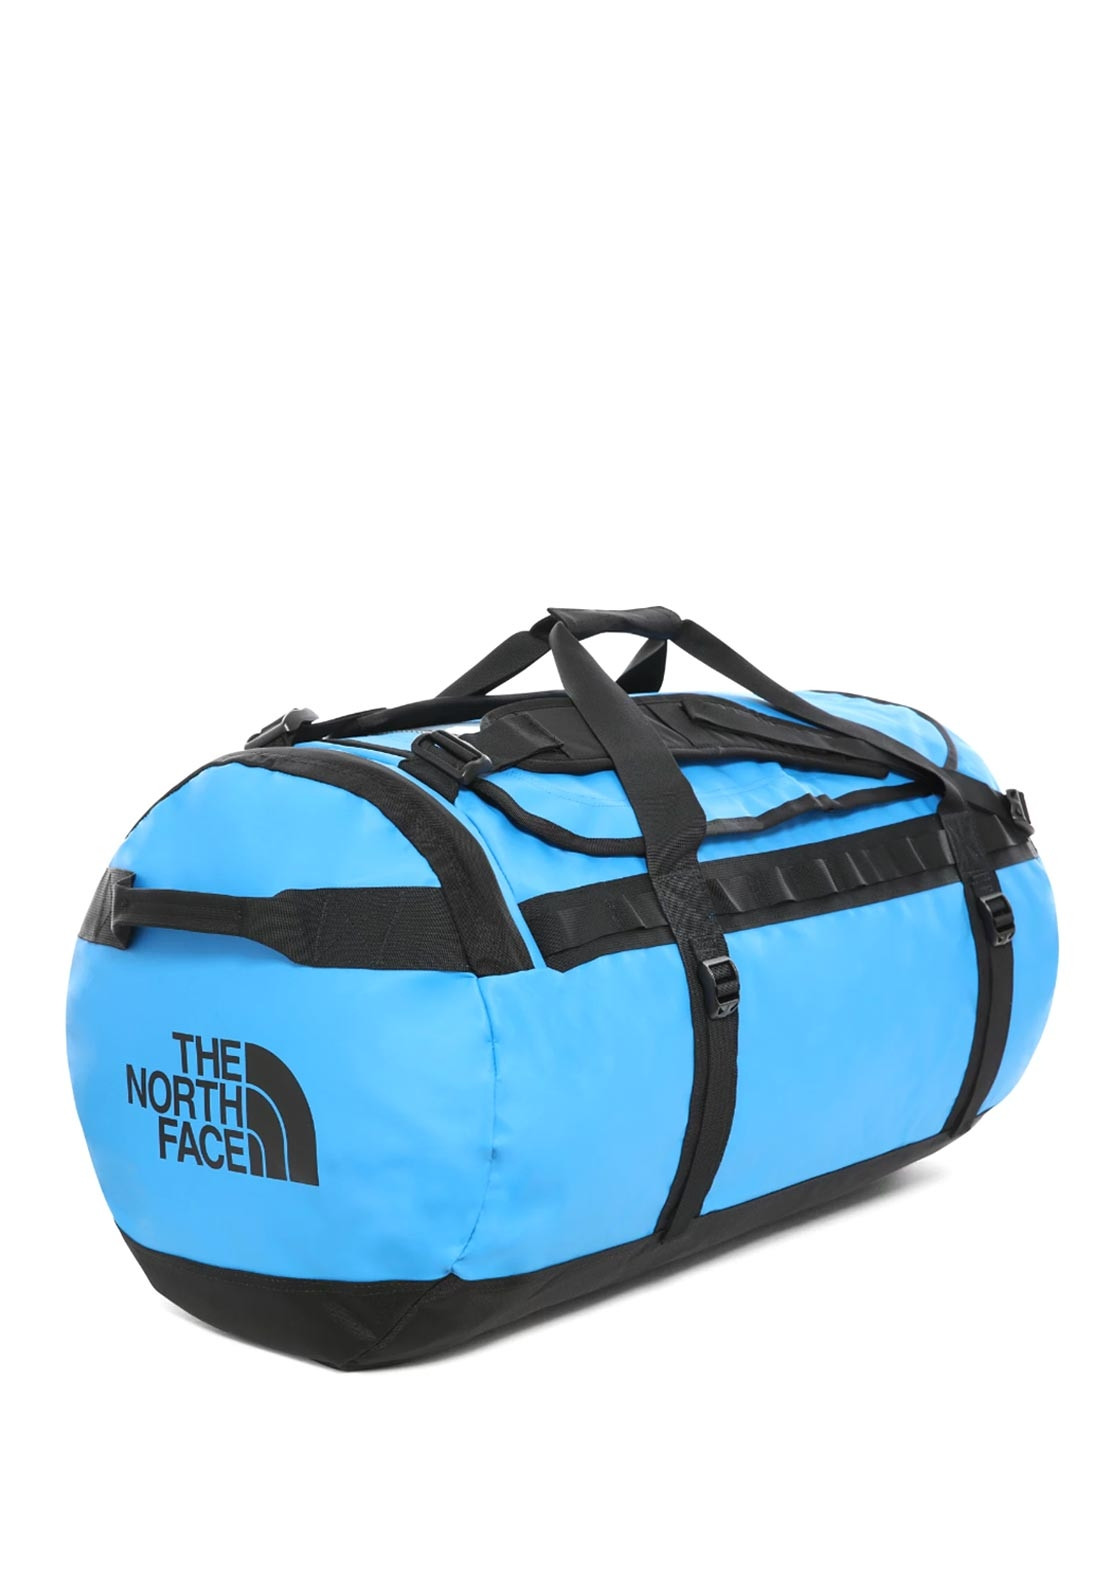 The North Face Large Duffle Bag, Blue